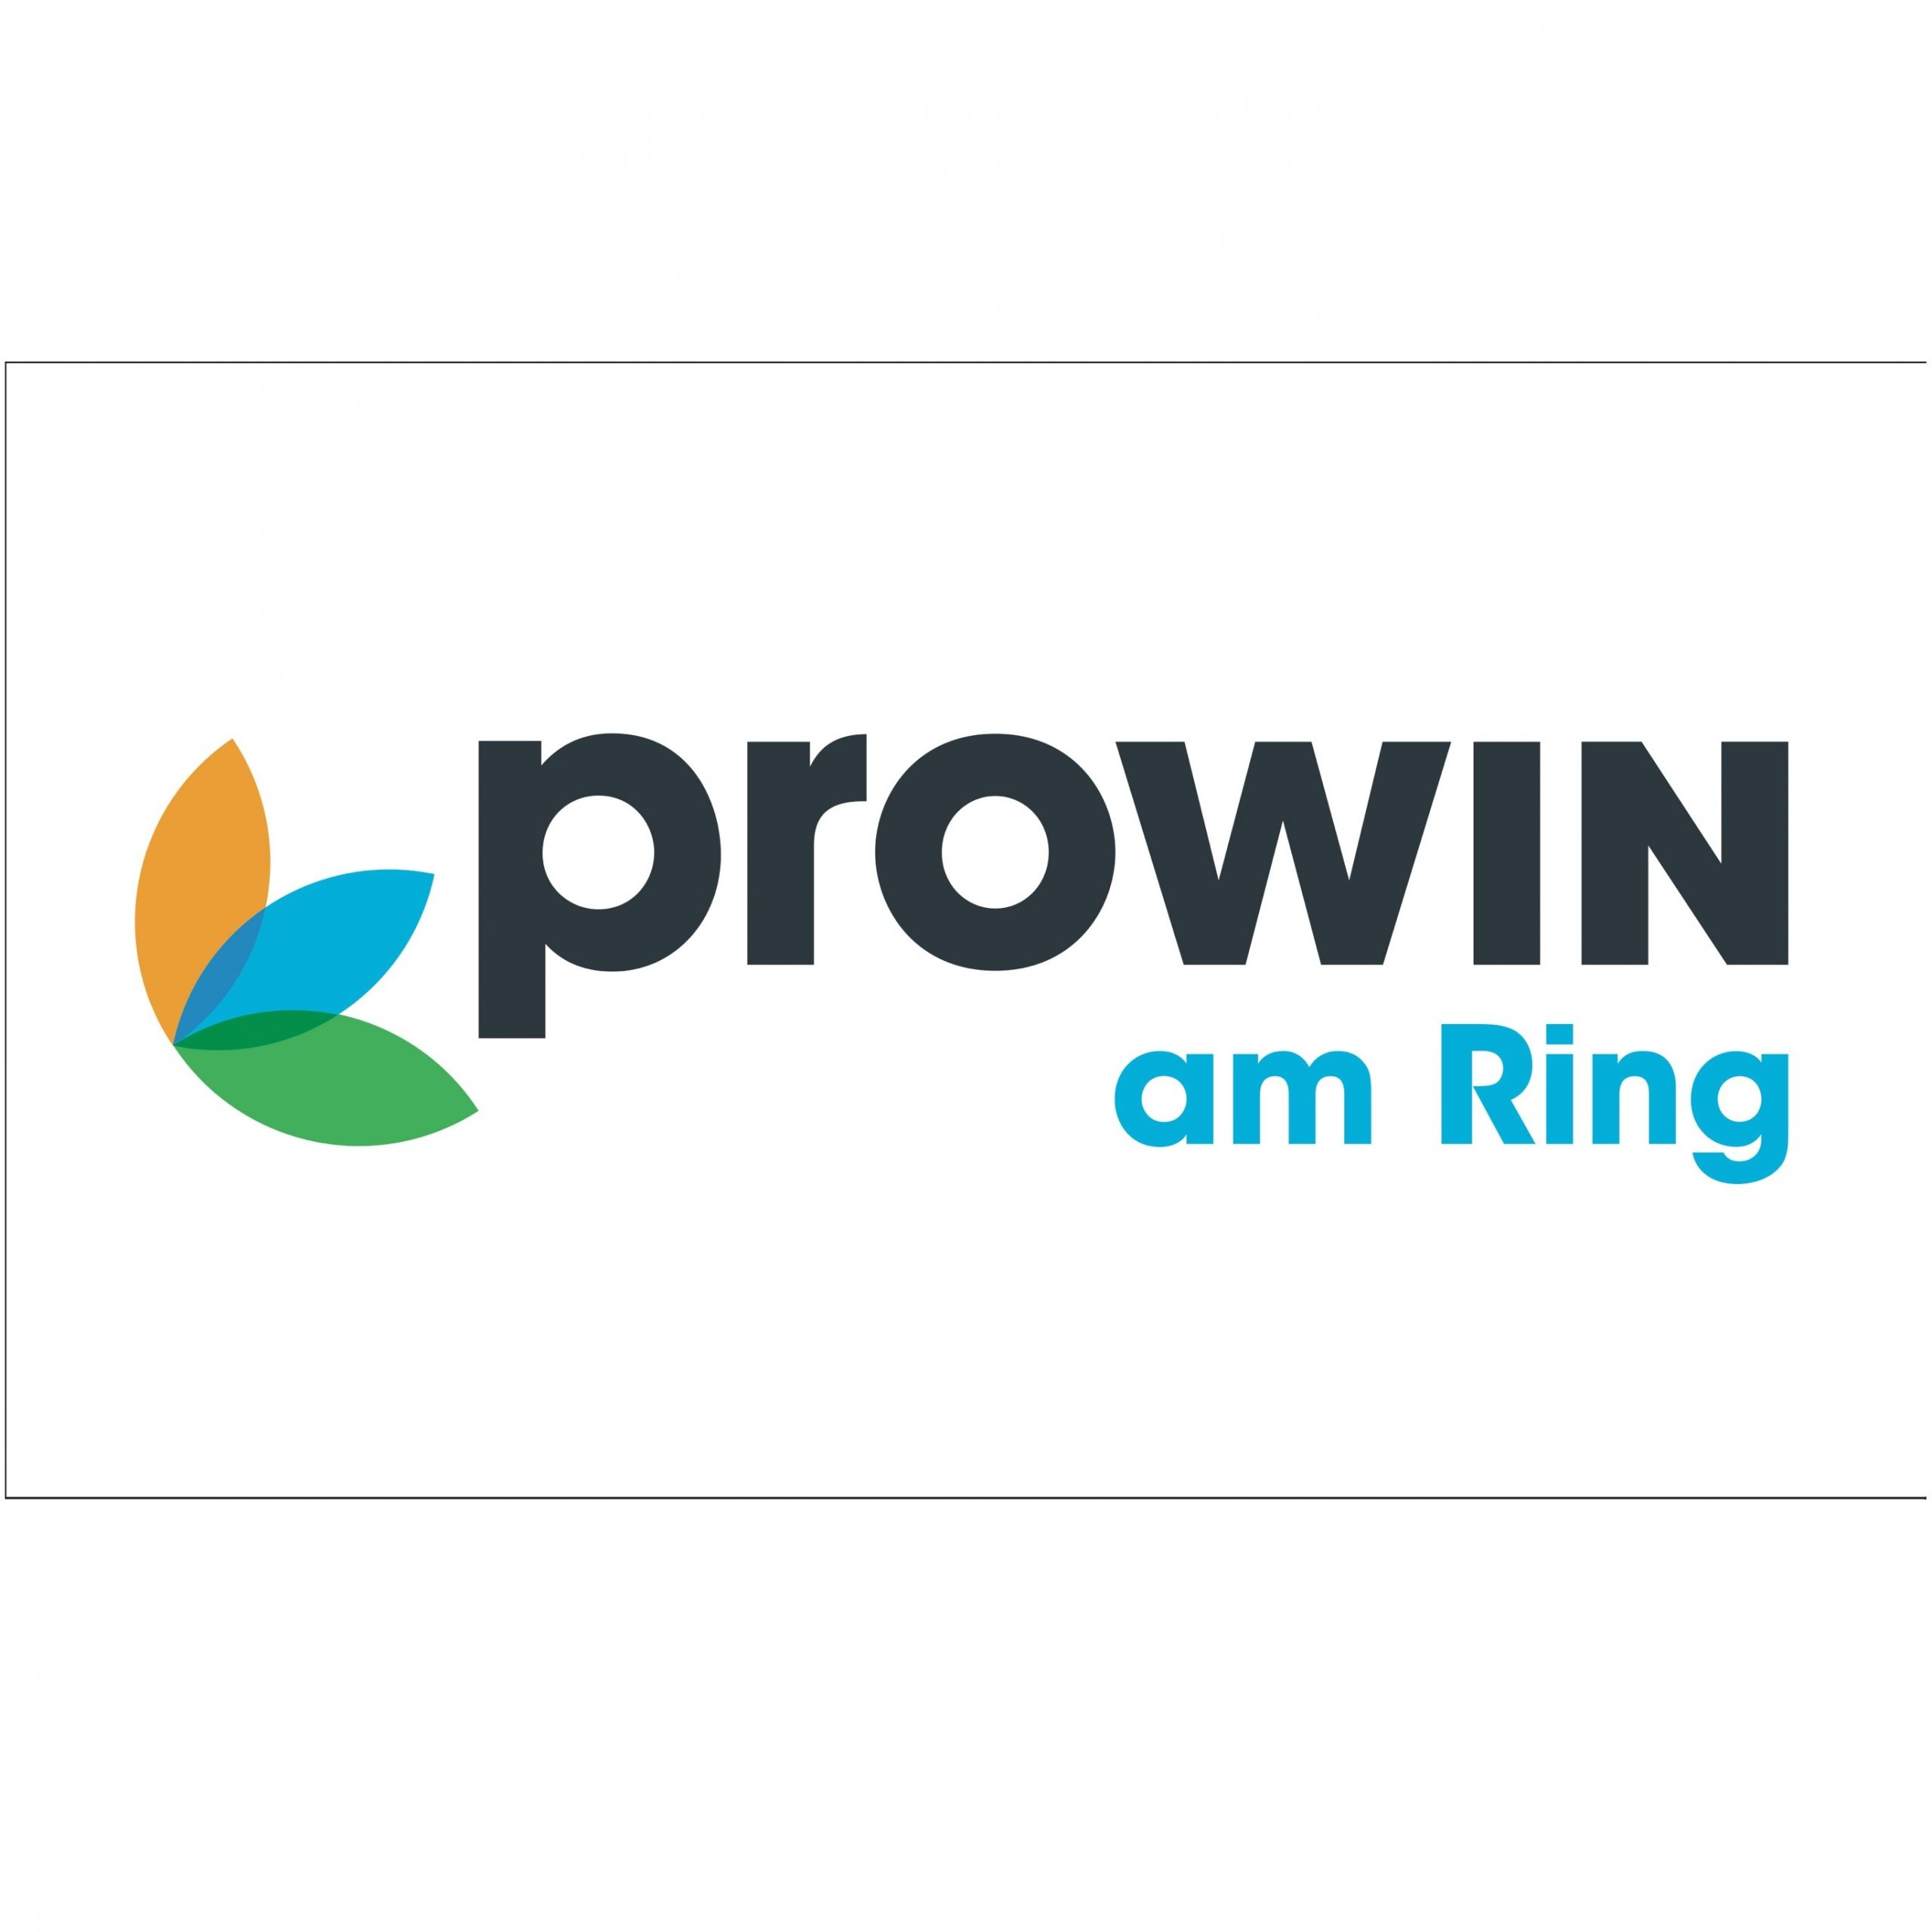 prowin am ring weiss scaled